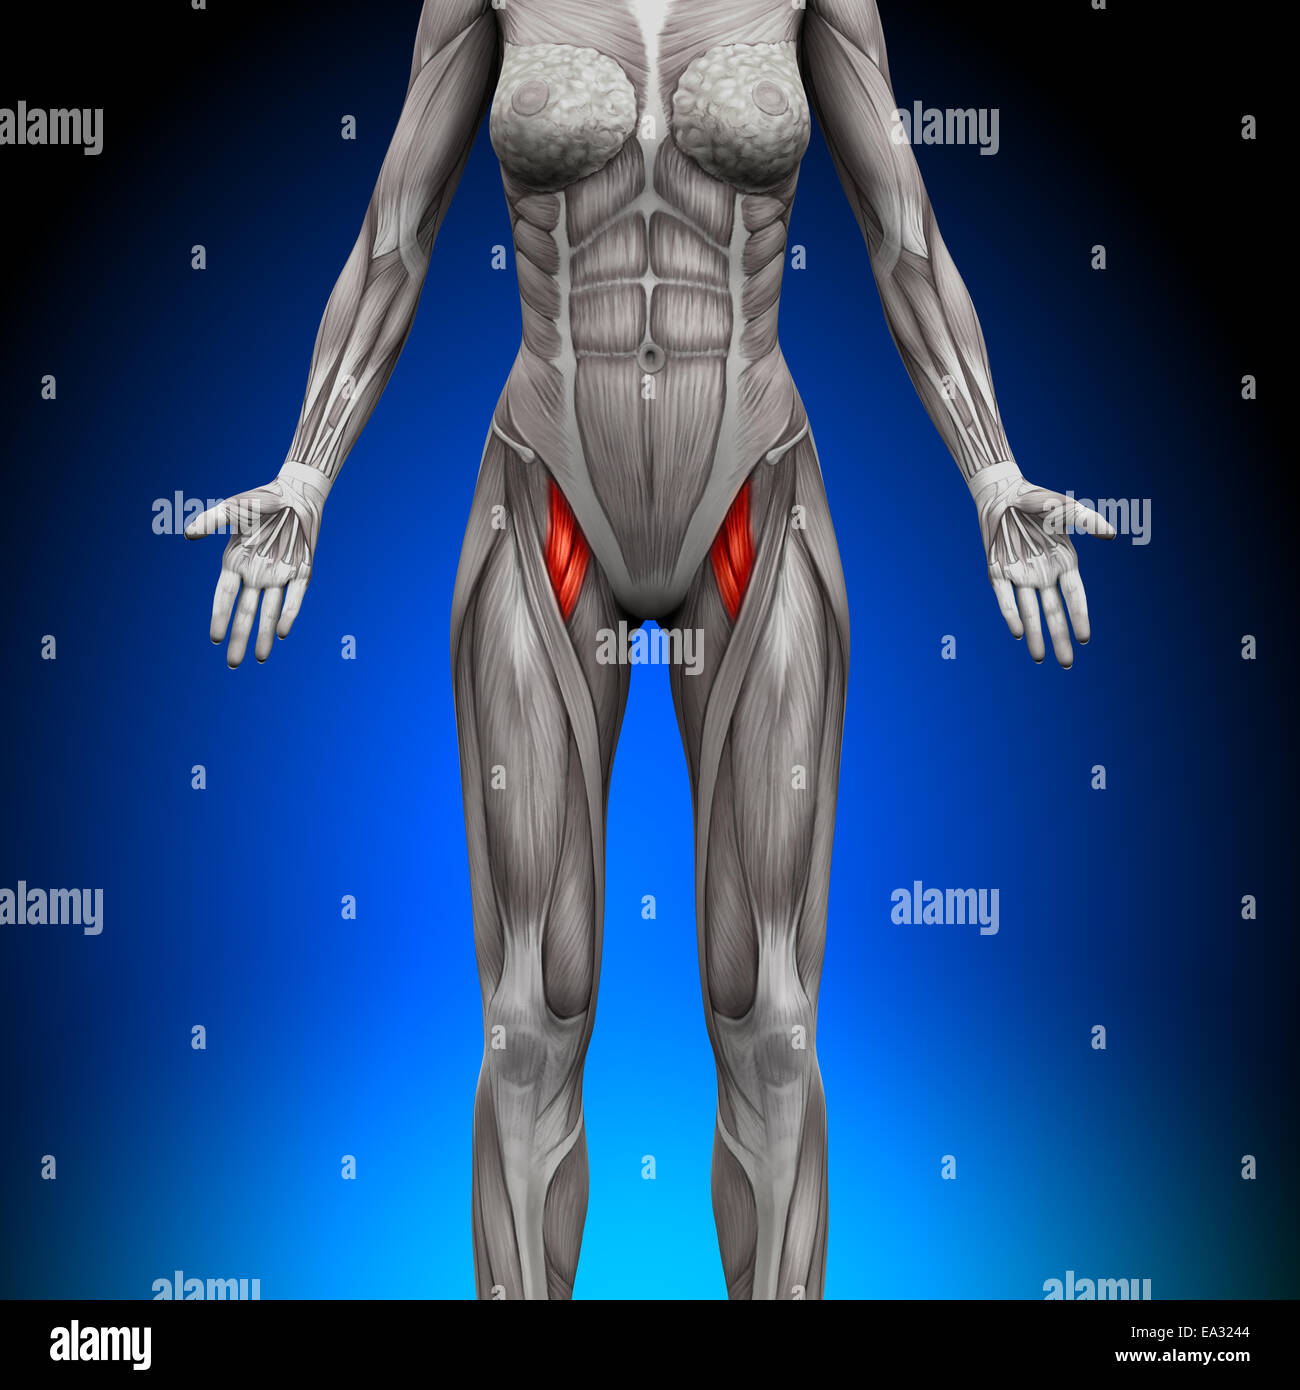 Thighs - Female Anatomy Muscles Stock Photo: 75055572 - Alamy